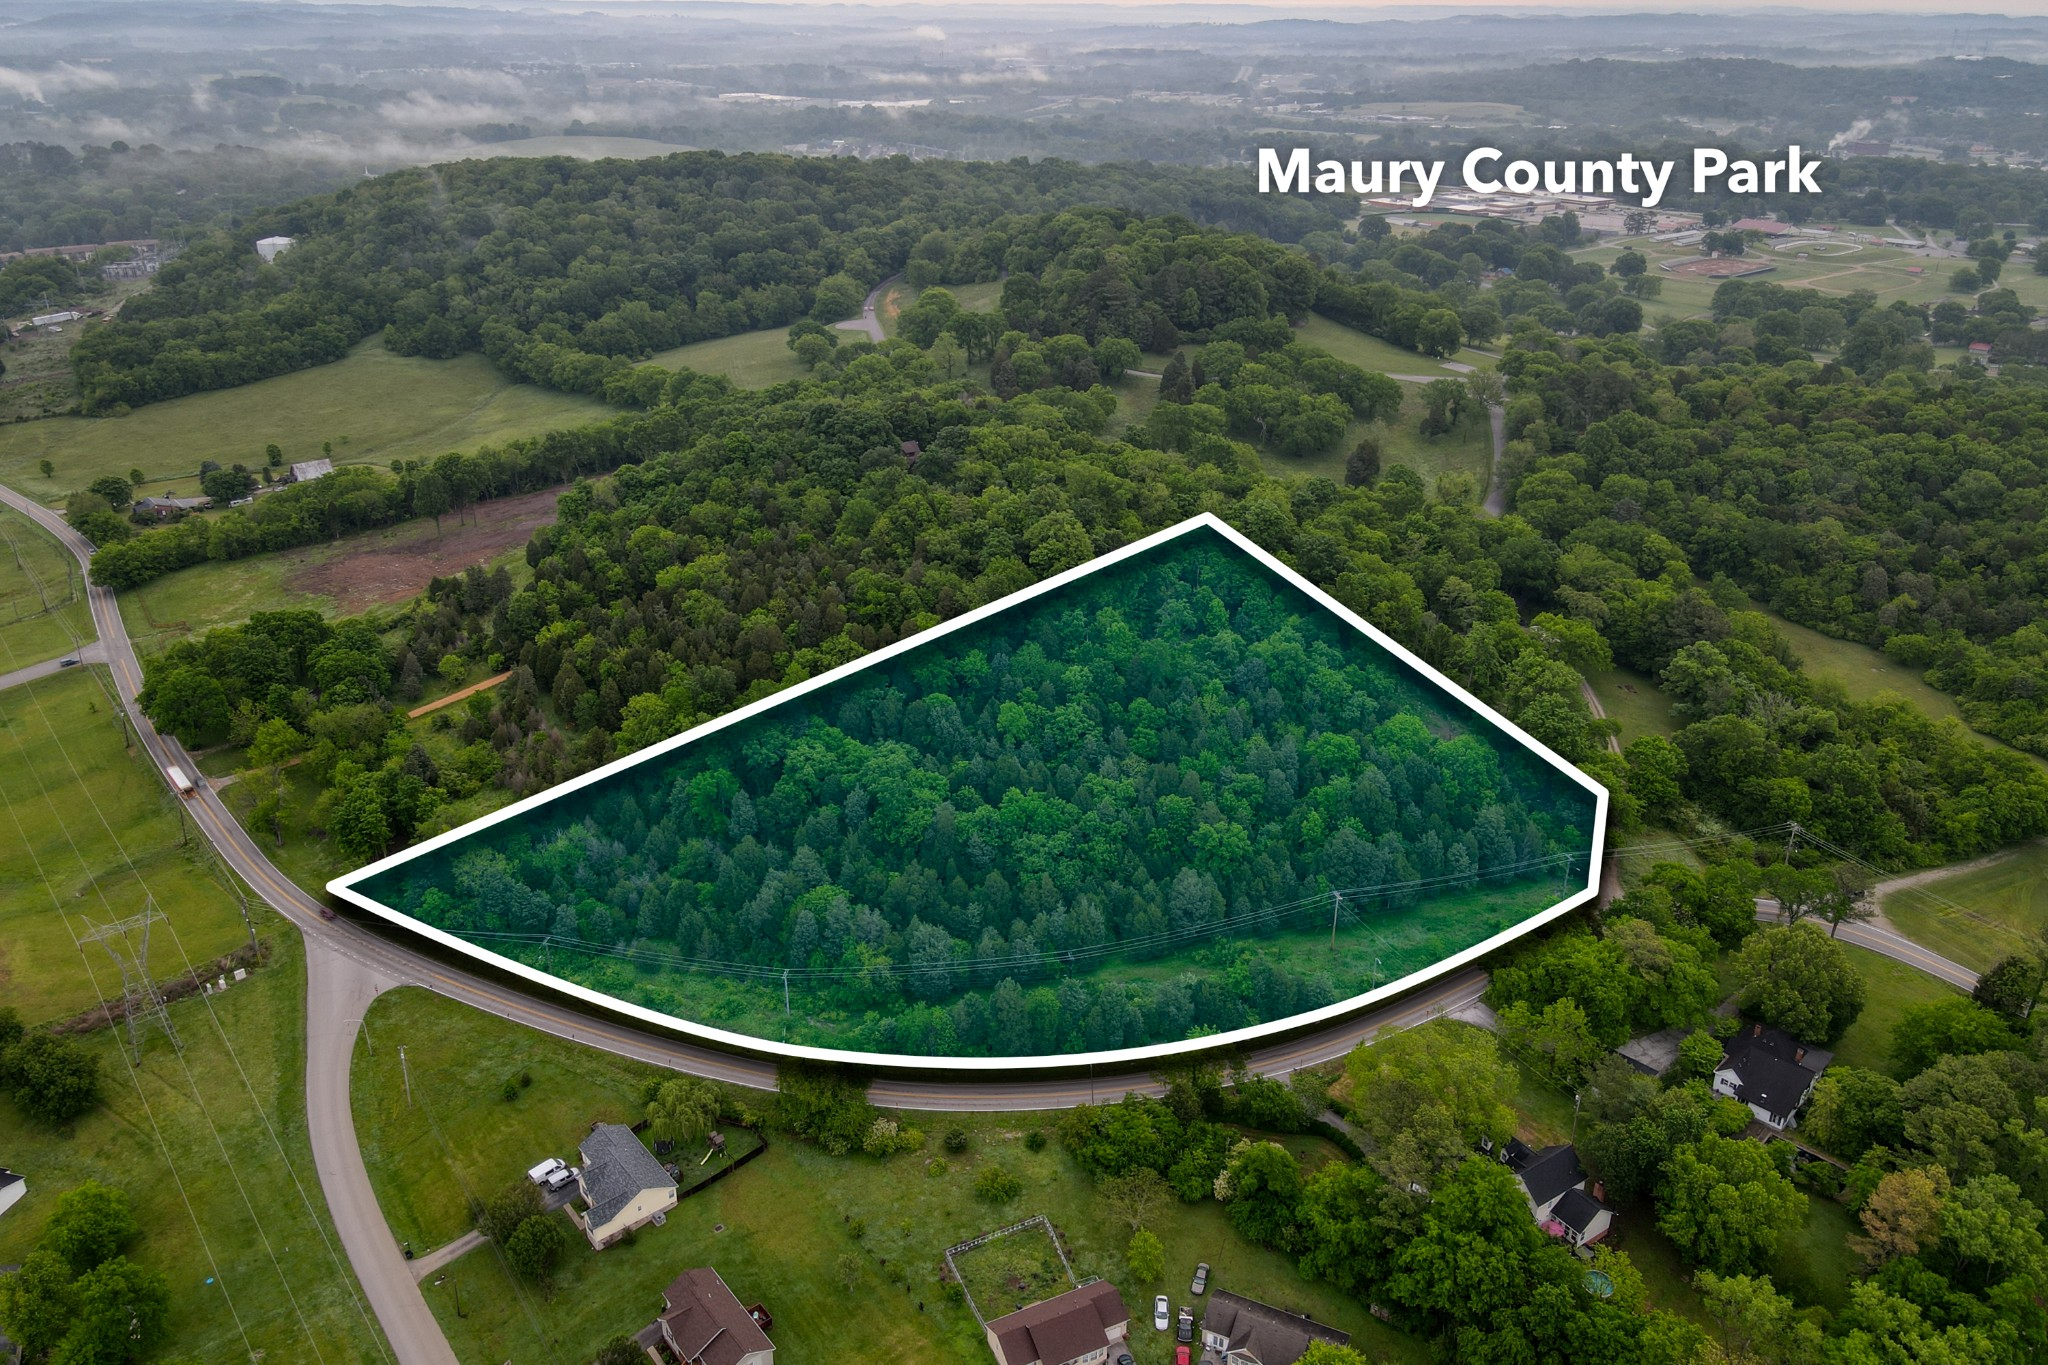 Privacy & Seclusion!  Right about 7 Acres Nestled near the Heart of Columbia!  Offering 1030 Feet of Road Frontage. This Beautiful wooded area backs right up to Maury County Park!  Property has a couple of Beautiful Potential Building Sites for a home or HOMES! Electric and gas located at the road, all other utilities including sewer, water, high speed fiber optic cable located across the street. Come see all of the potential this Oasis has to offer!! No percolation test has been performed.